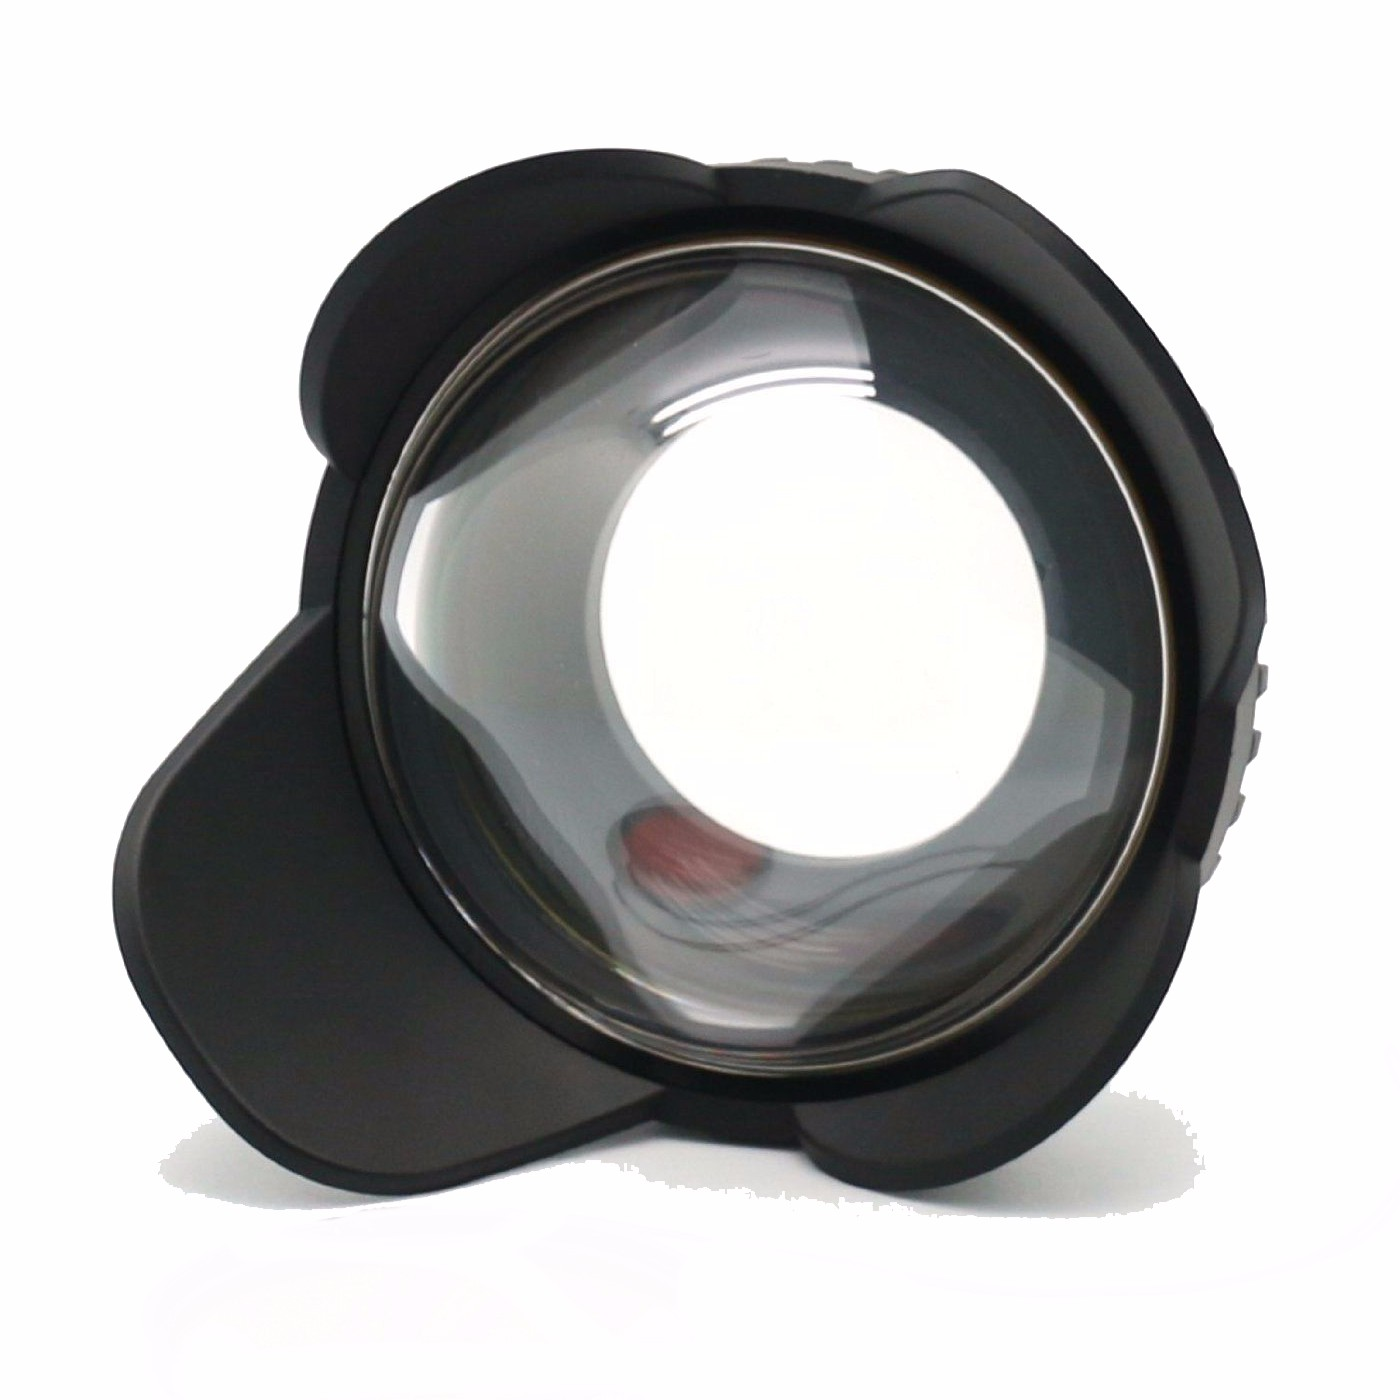 MEIKON 67mm Fisheye Wide Angle Lens Dome Port Shade Cover 60m 197ft Waterproof 67mm Adapter for